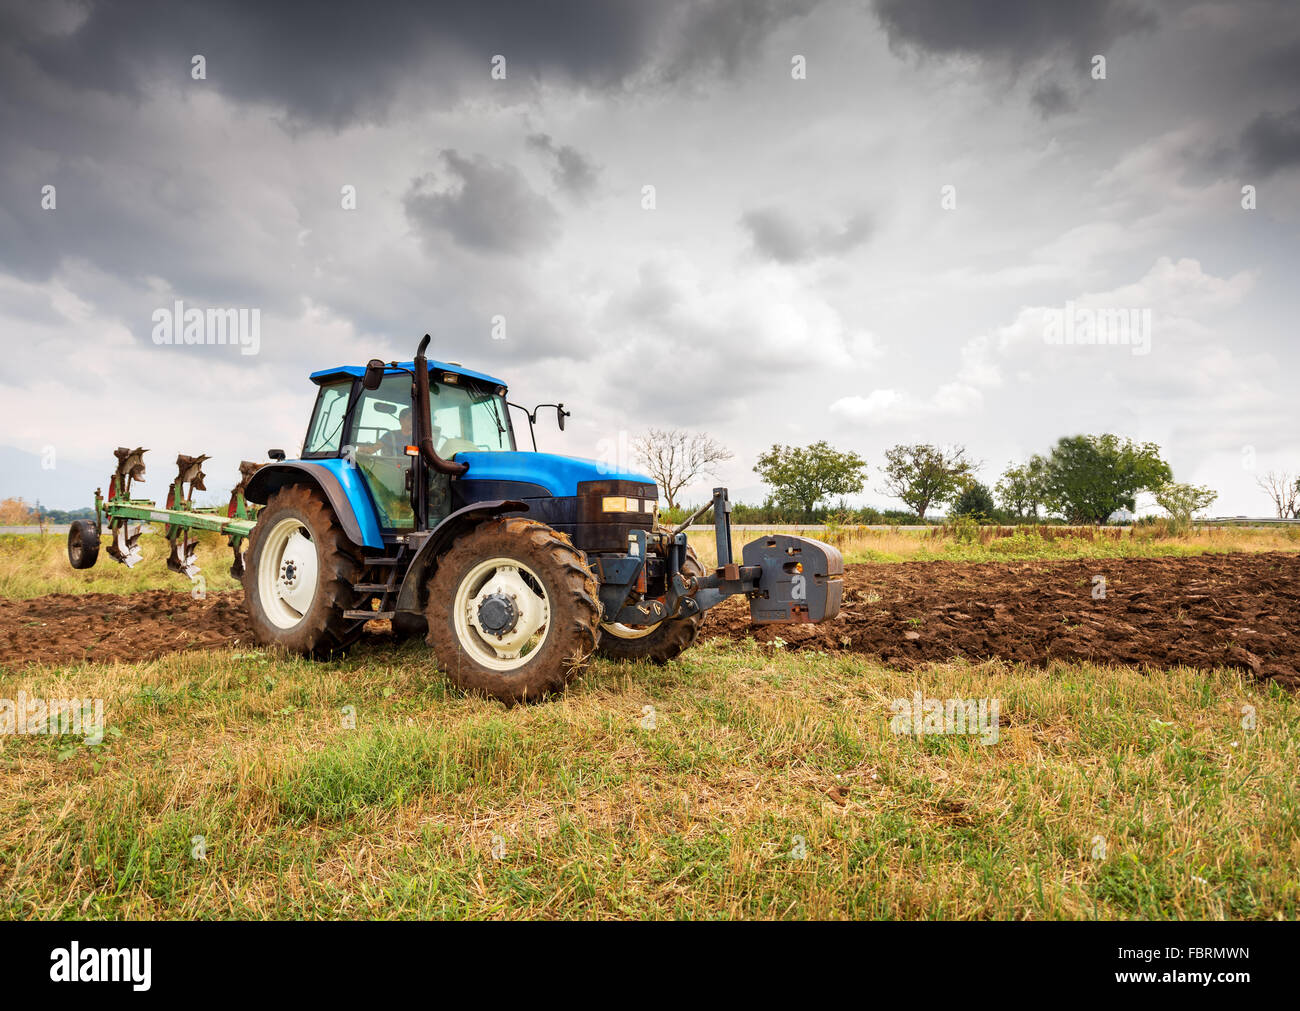 Kazanlak, Bulagria - Aug 20: New Holland 8160 tractor on display in Salo, Finland on Aug 20, 2015. In Europe, agricultural - Stock Image